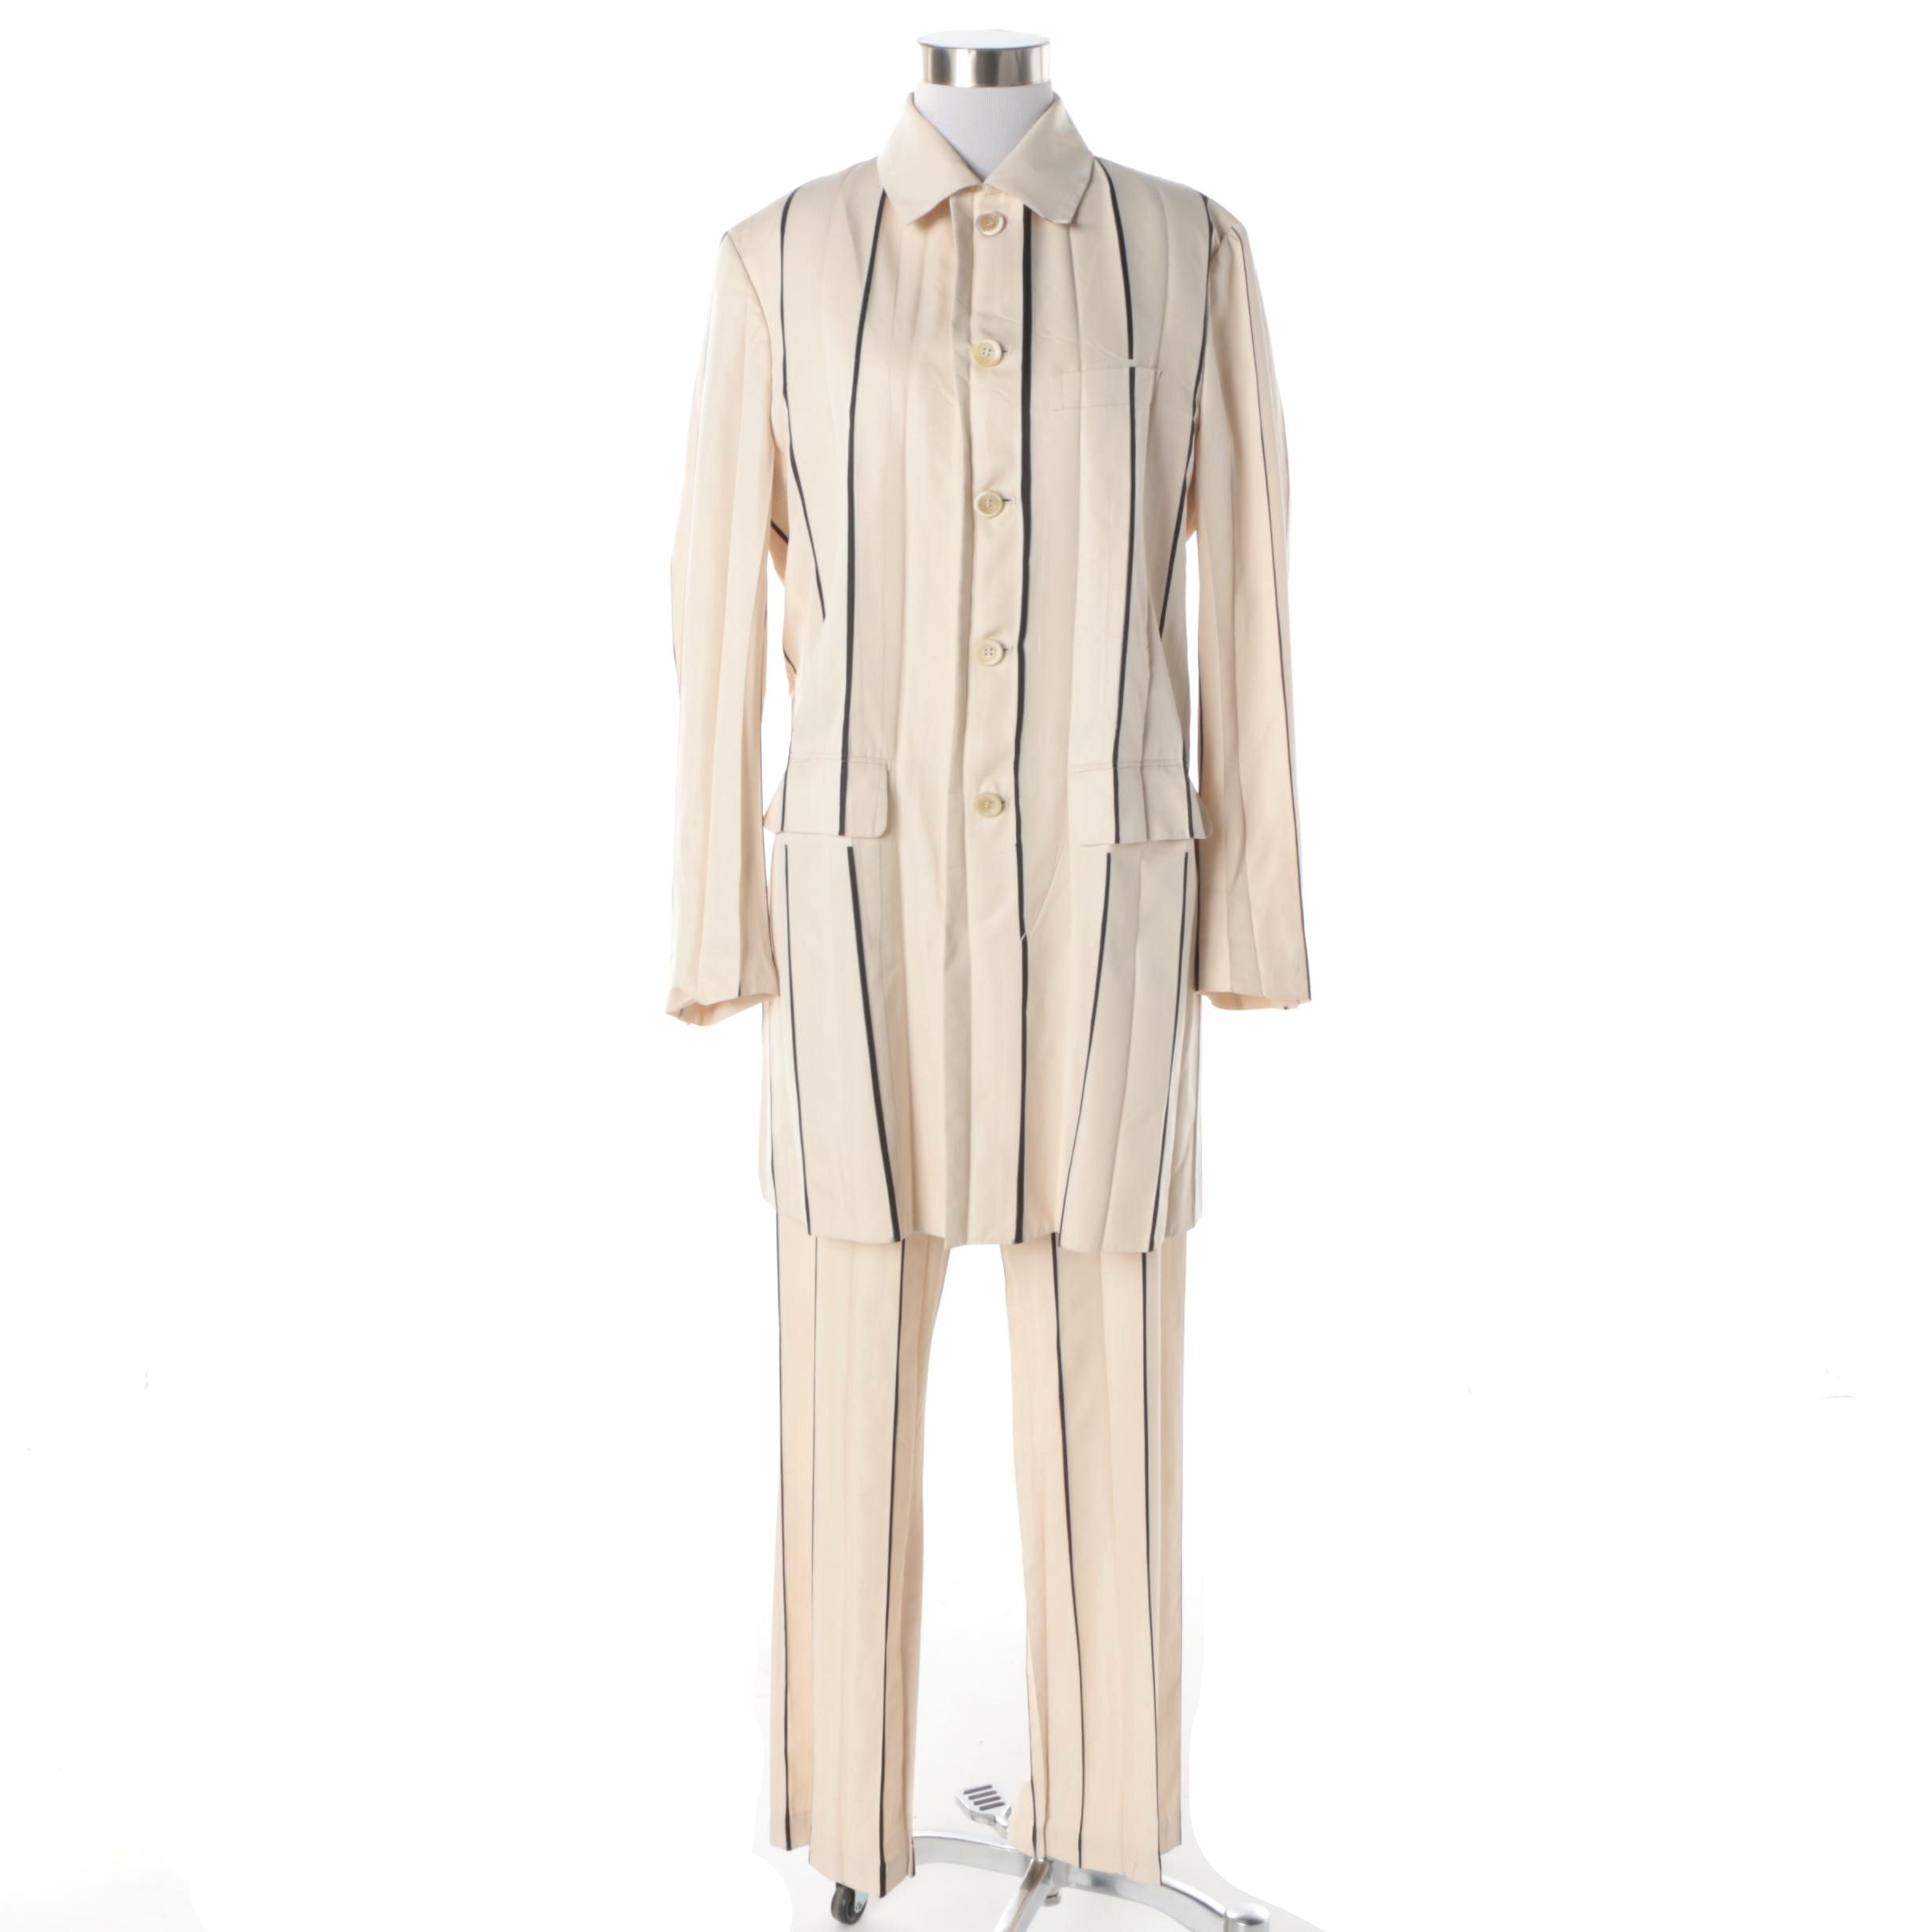 Women's Issey Miyake Cream and Black Striped Pantsuit